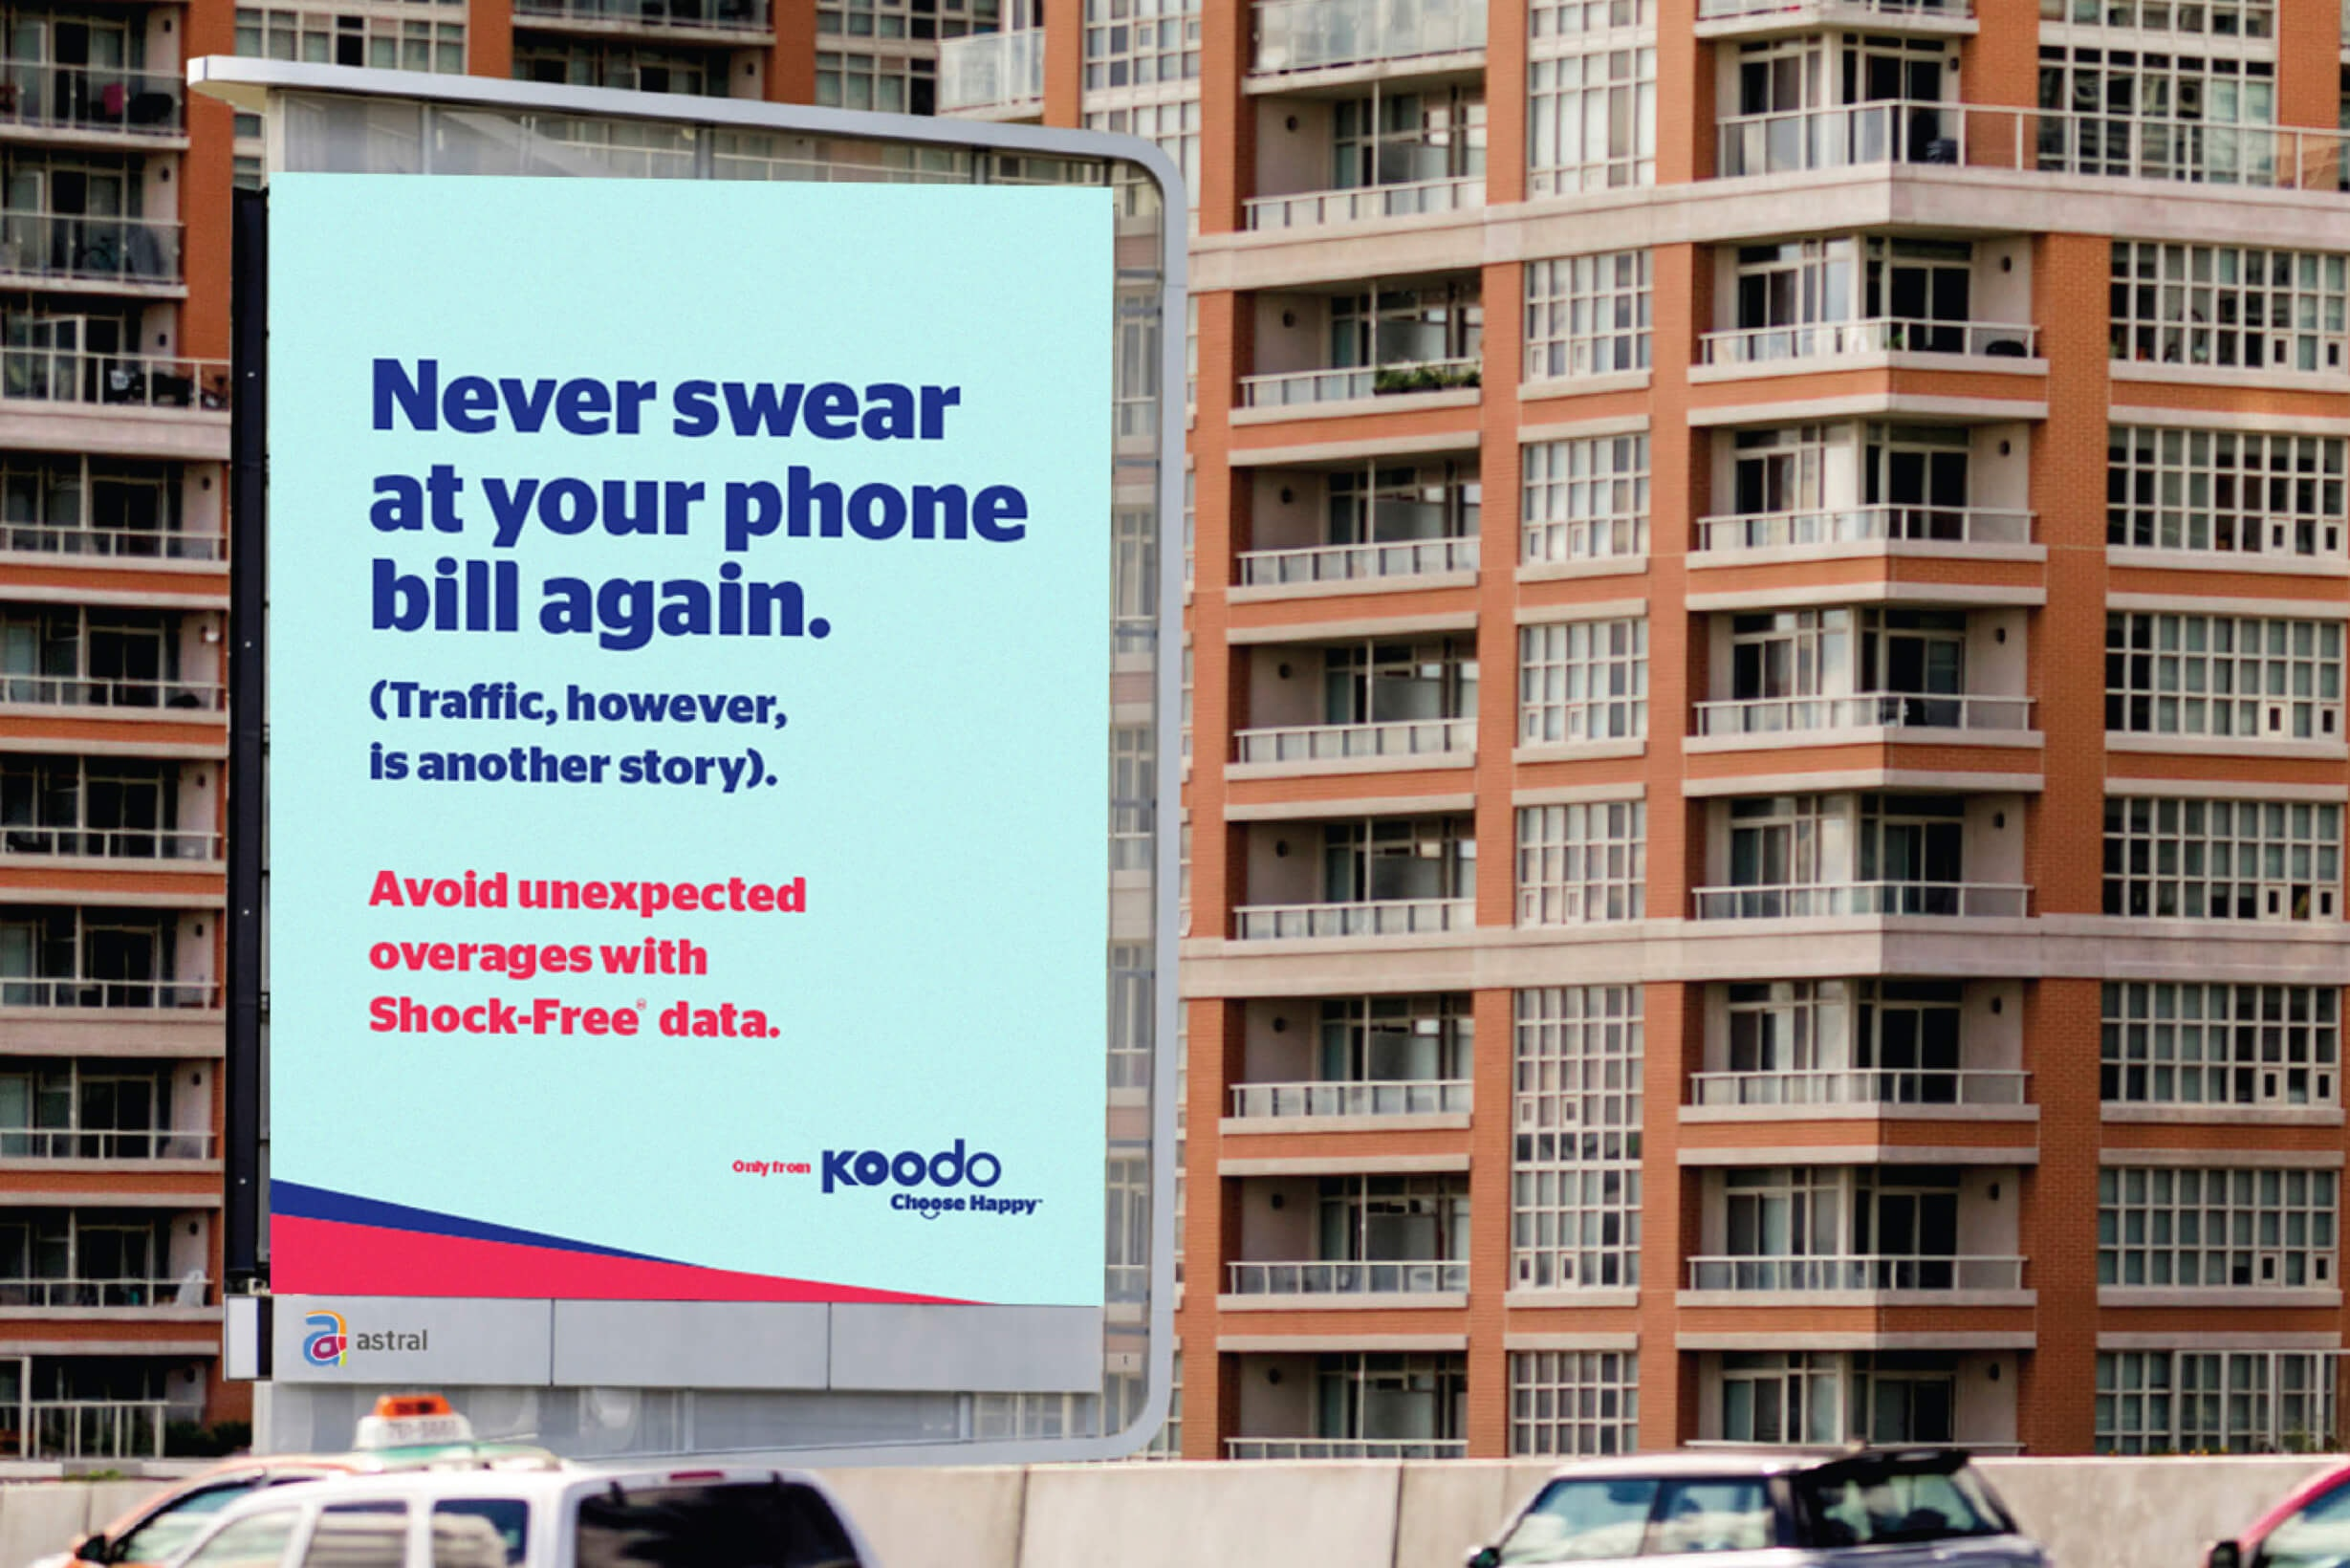 Never swear at your phone bill again.